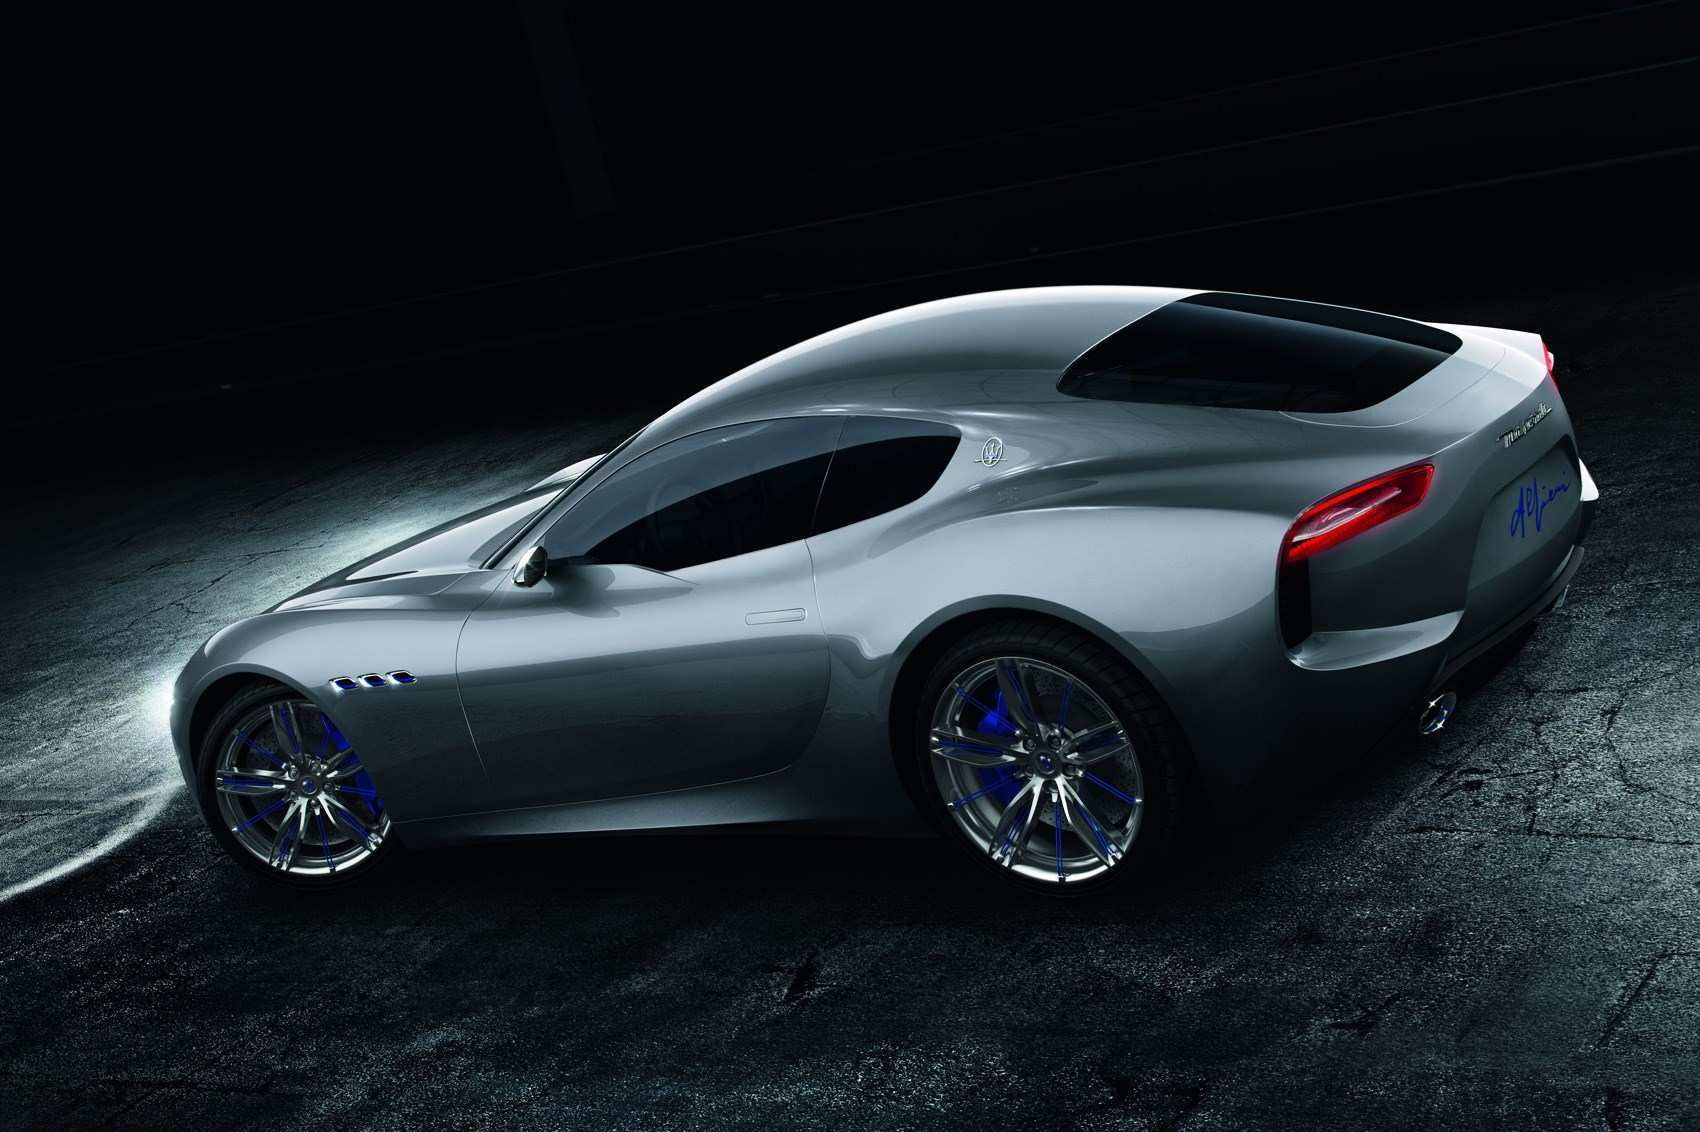 82 Gallery of 2020 Maserati Alfieri Specs for 2020 Maserati Alfieri